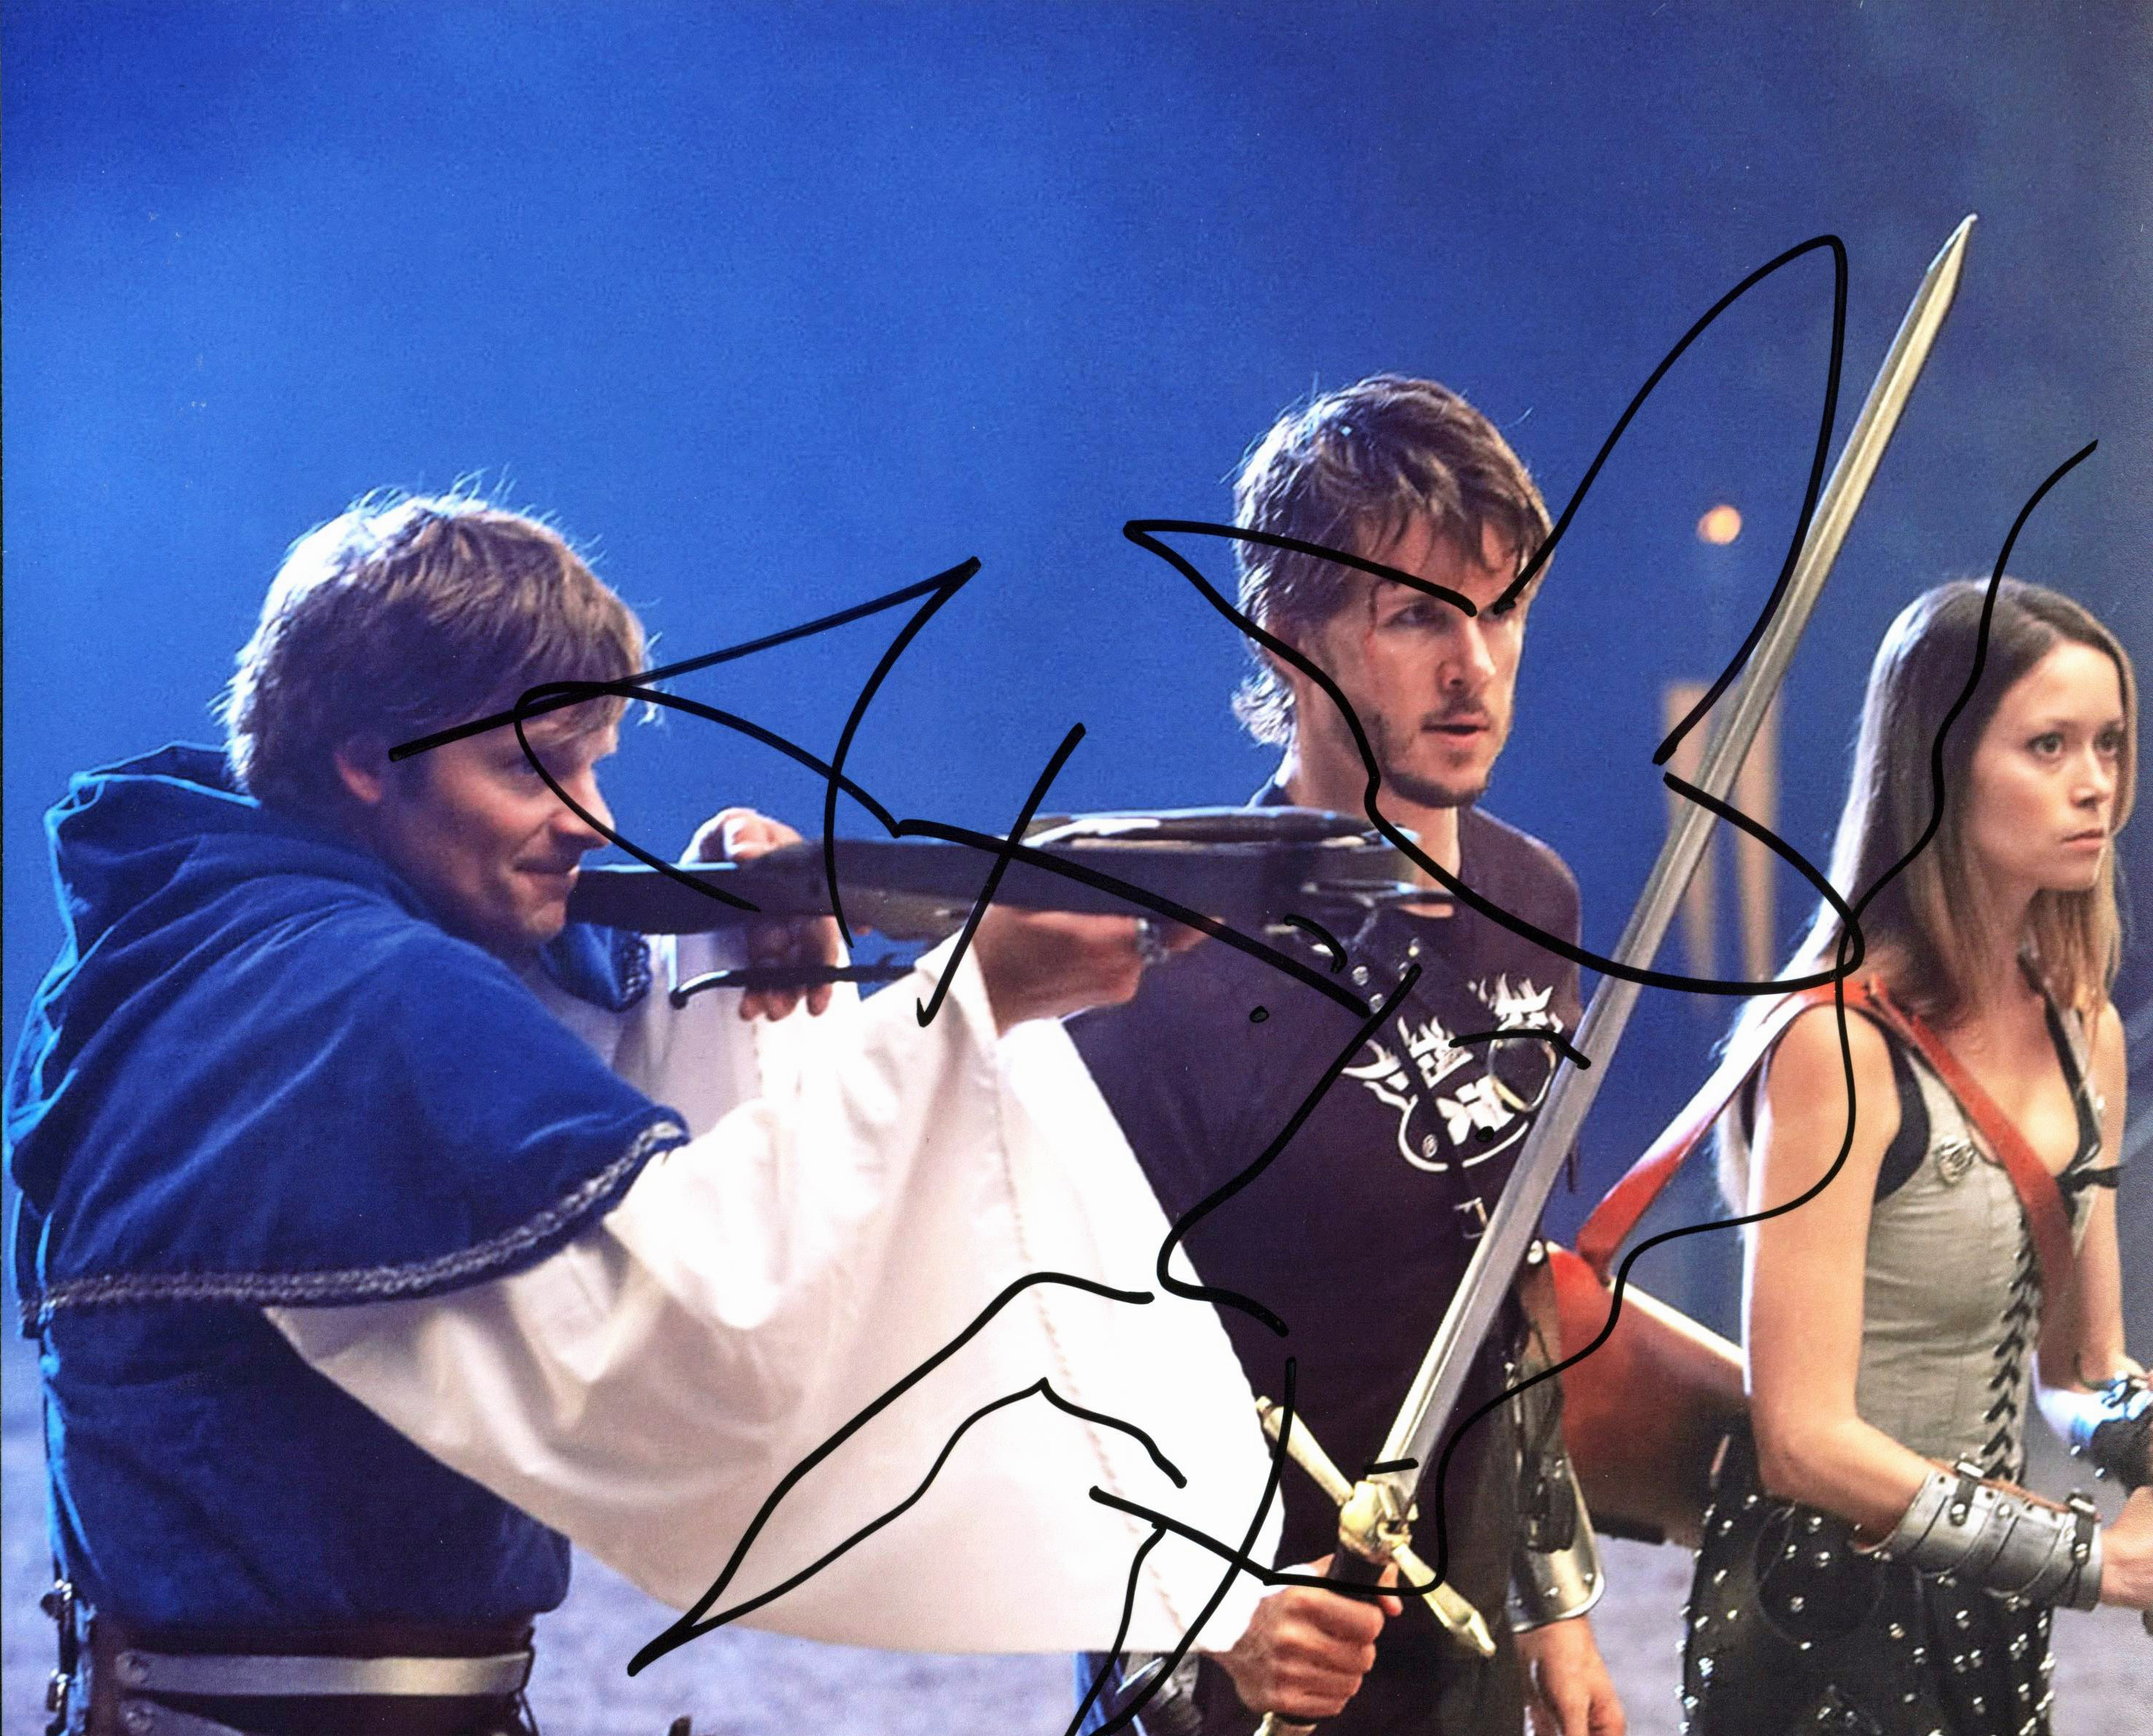 Steve Zahn Knights of Badassdom Signed 8x10 Photo w/ Wizard Sketch BAS #D05879